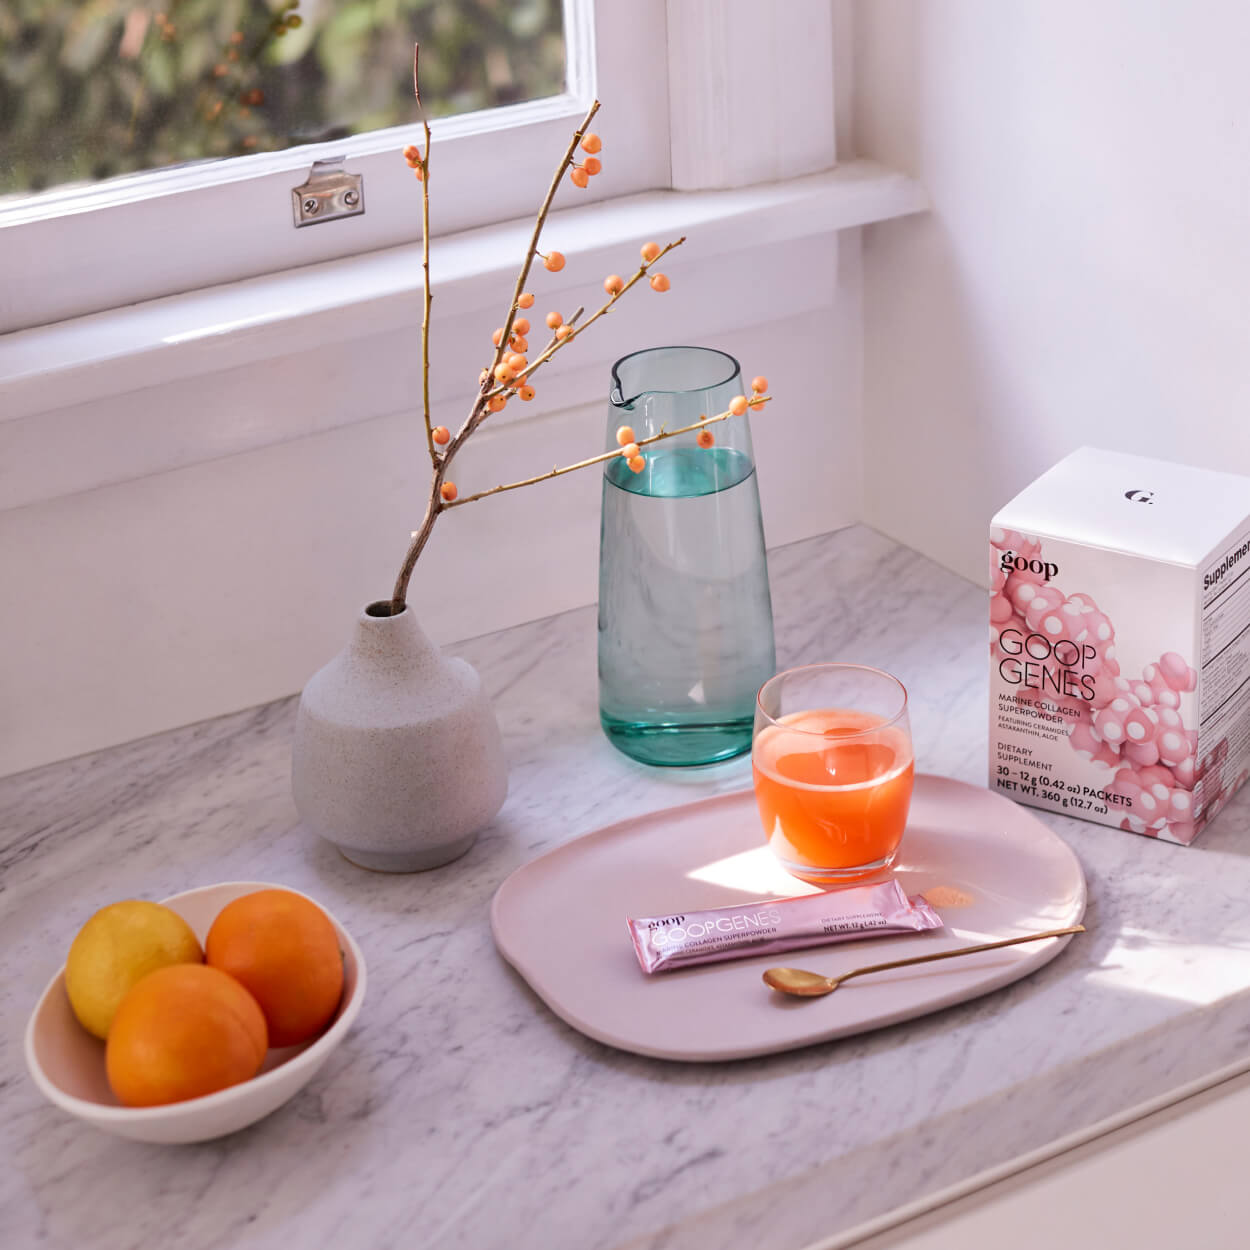 window sill with glass of goopgenes superpowder